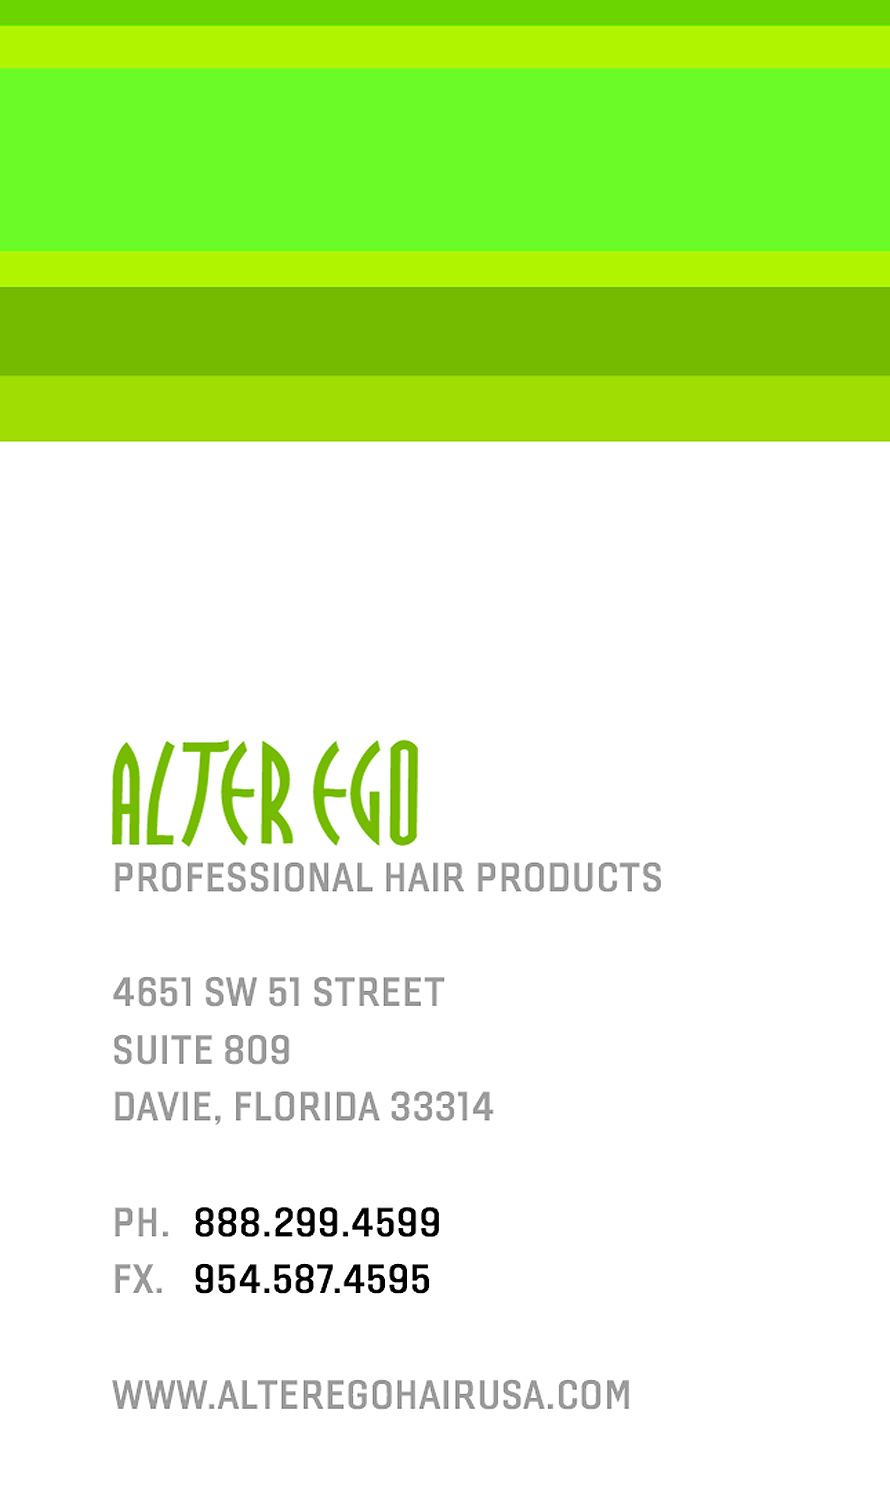 Professional Hair Products